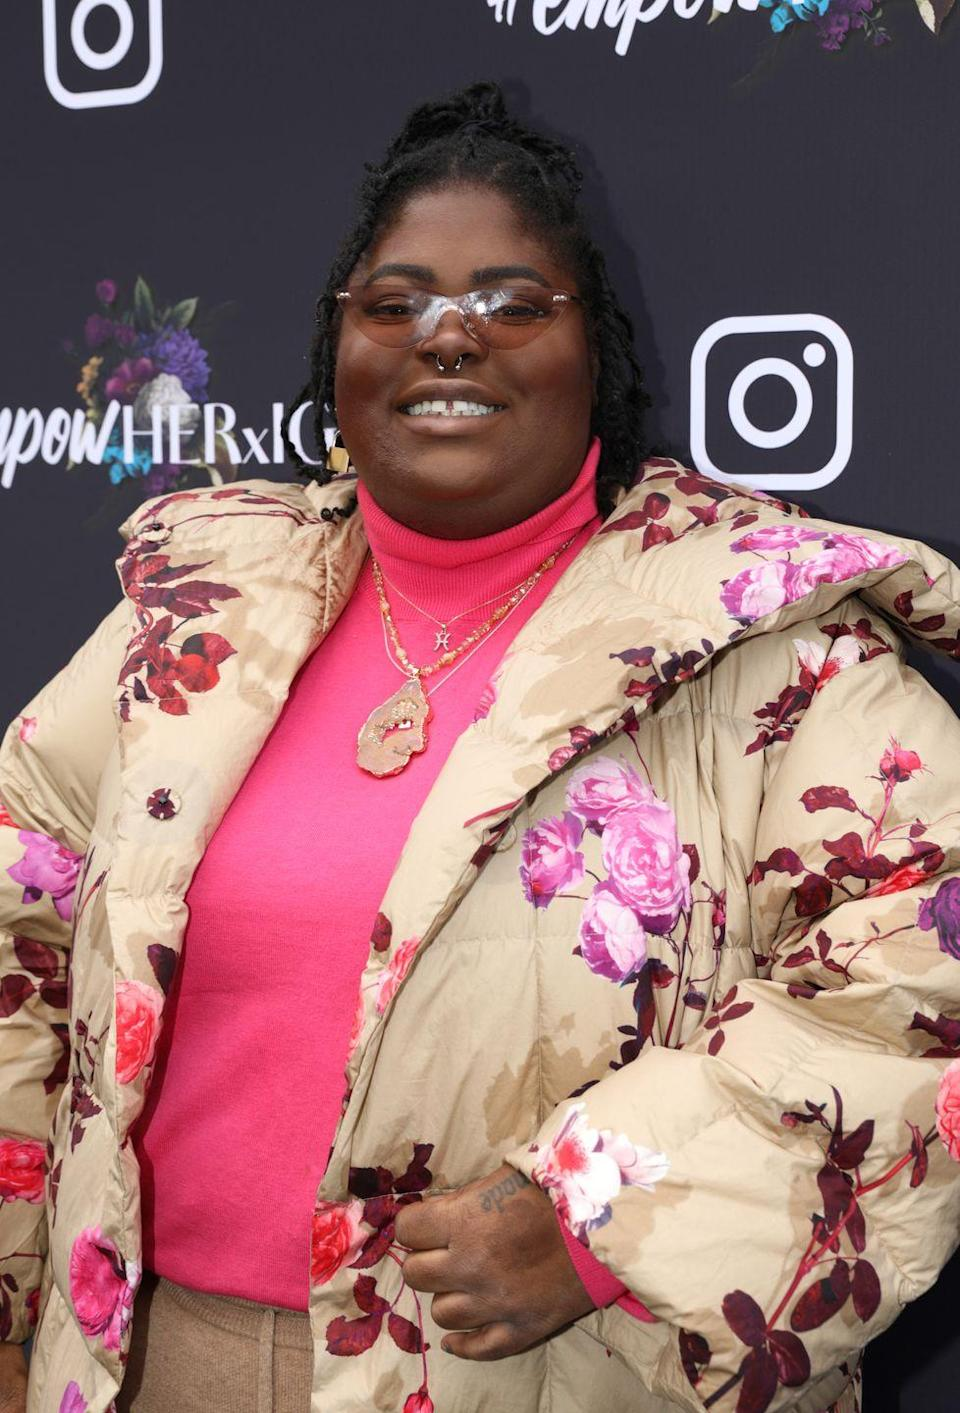 "<p>In 2020, rapper Chika was nominated for a best new artist Grammy and in 2021, her debut album will finally drop.<br></p><p>Chika went viral for challenging <a href=""https://www.elle.com/uk/life-and-culture/a33392583/kim-kardashian-statement-kanye-west-bipolar-disorder/"" rel=""nofollow noopener"" target=""_blank"" data-ylk=""slk:Kanye West's"" class=""link rapid-noclick-resp"">Kanye West's</a> support of <a href=""https://www.elle.com/uk/life-and-culture/a27679000/sadiq-khans-open-letter-to-donald-trump/"" rel=""nofollow noopener"" target=""_blank"" data-ylk=""slk:Donald Trump"" class=""link rapid-noclick-resp"">Donald Trump </a>and has fans including Erykah Badu and<a href=""https://www.elle.com/uk/life-and-culture/a34755515/cardi-b-amas/"" rel=""nofollow noopener"" target=""_blank"" data-ylk=""slk:Cardi B"" class=""link rapid-noclick-resp""> Cardi B</a>. She's been featured in a #MyCalvins campaign for <a href=""https://www.elle.com/uk/beauty/hair/a23097183/calvin-klein-ss19-hair/"" rel=""nofollow noopener"" target=""_blank"" data-ylk=""slk:Calvin Klein"" class=""link rapid-noclick-resp"">Calvin Klein</a>, but is more concerned about using her platform to challenge popular rhetoric around race, mental health, sexuality and identity. </p>"